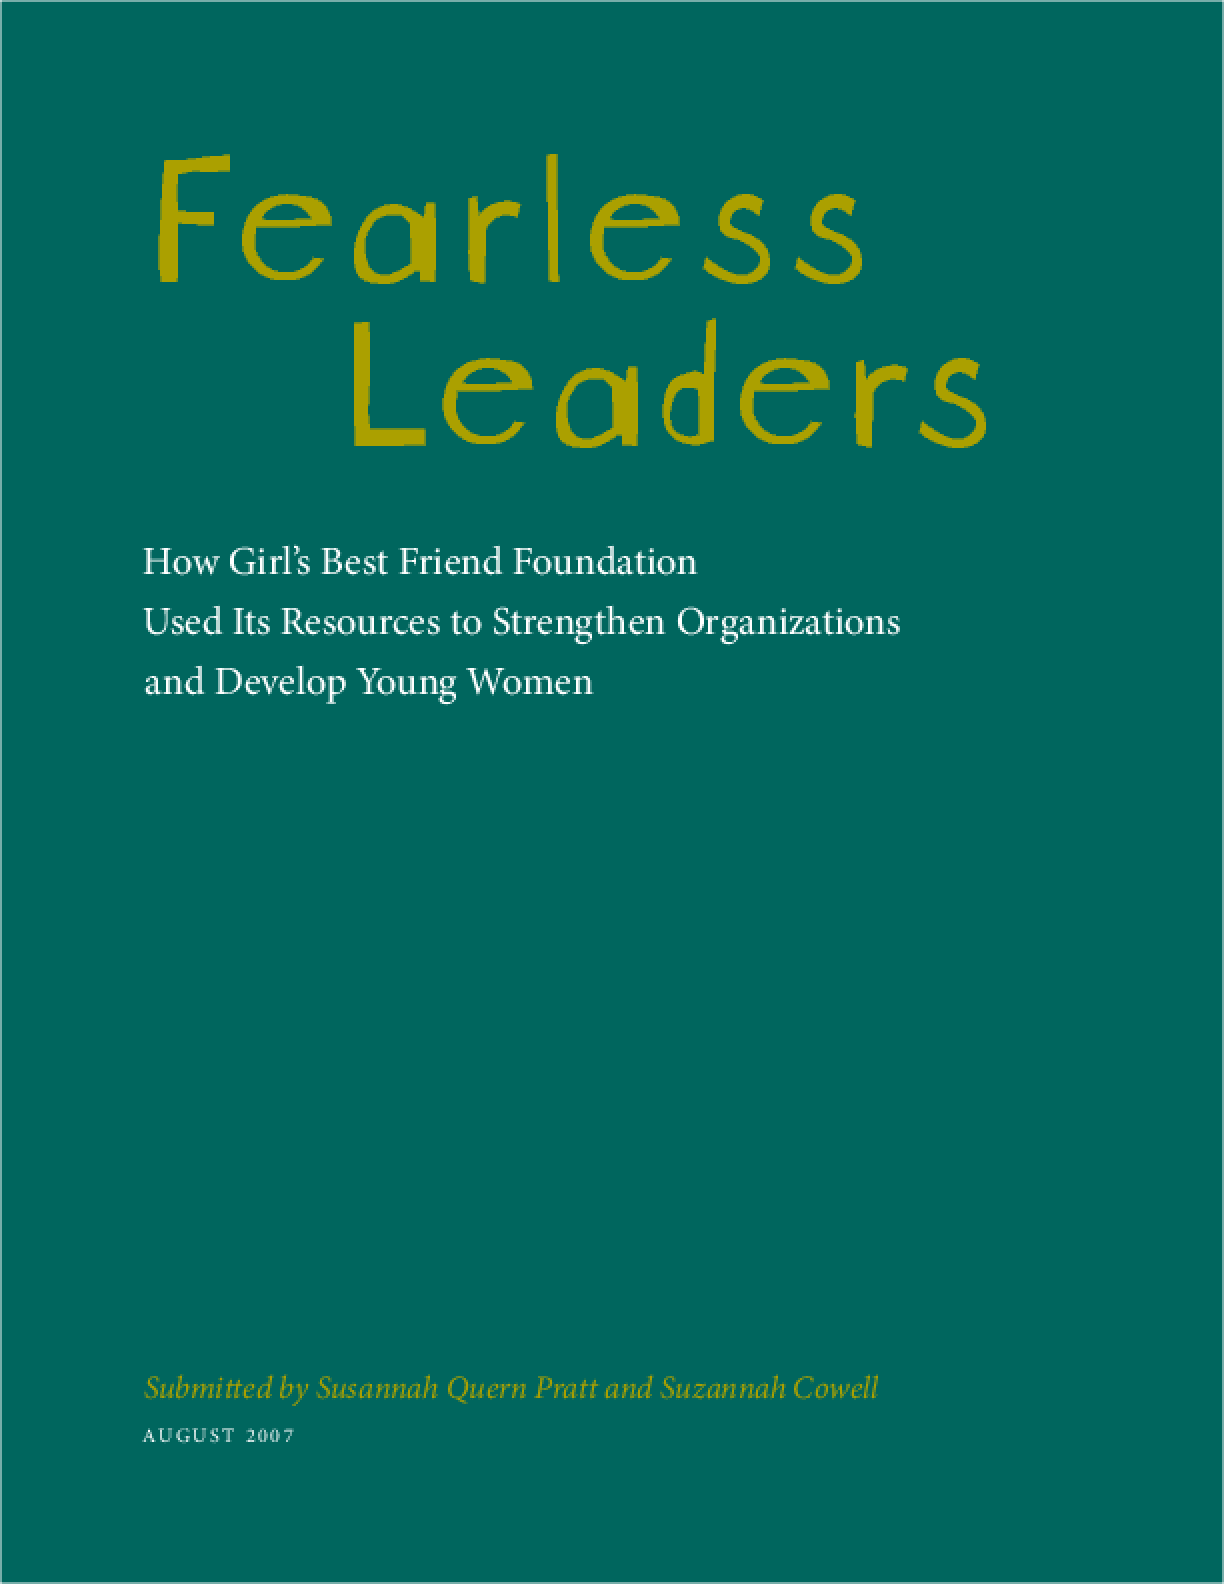 Fearless Leaders: How Girl's Best Friend Foundation Used Its Resources to Strengthen Organizations and Develop Young Women